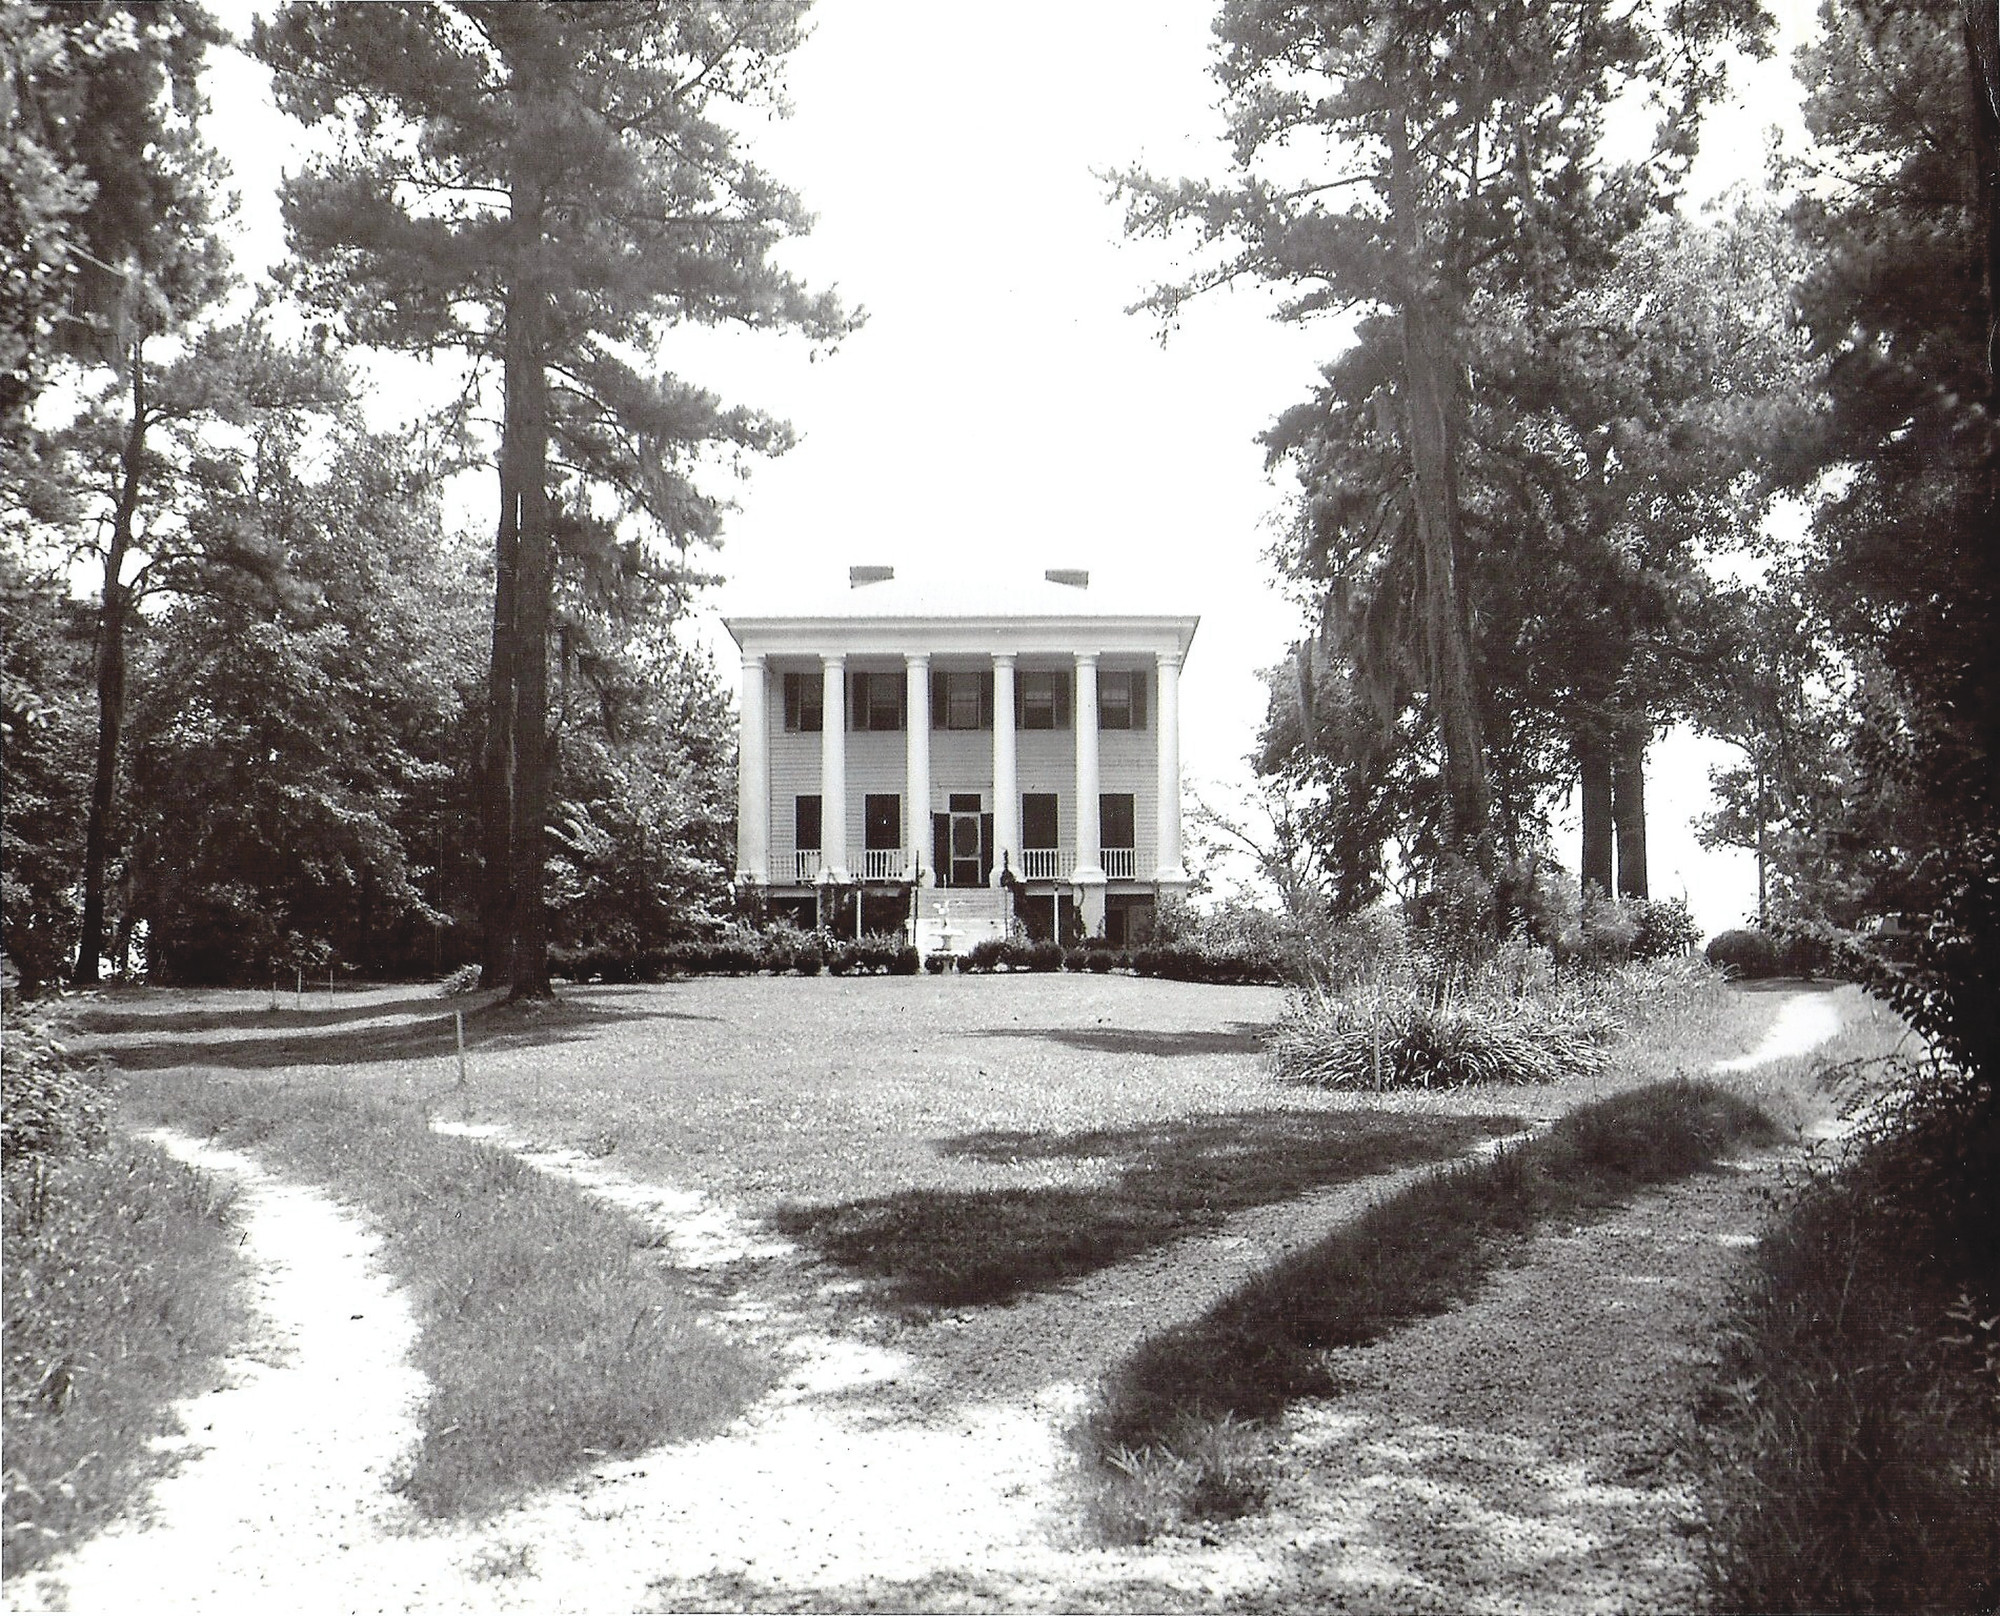 High Hills Plantation, the home of Alfred C. DeLorme, burned in 1965.